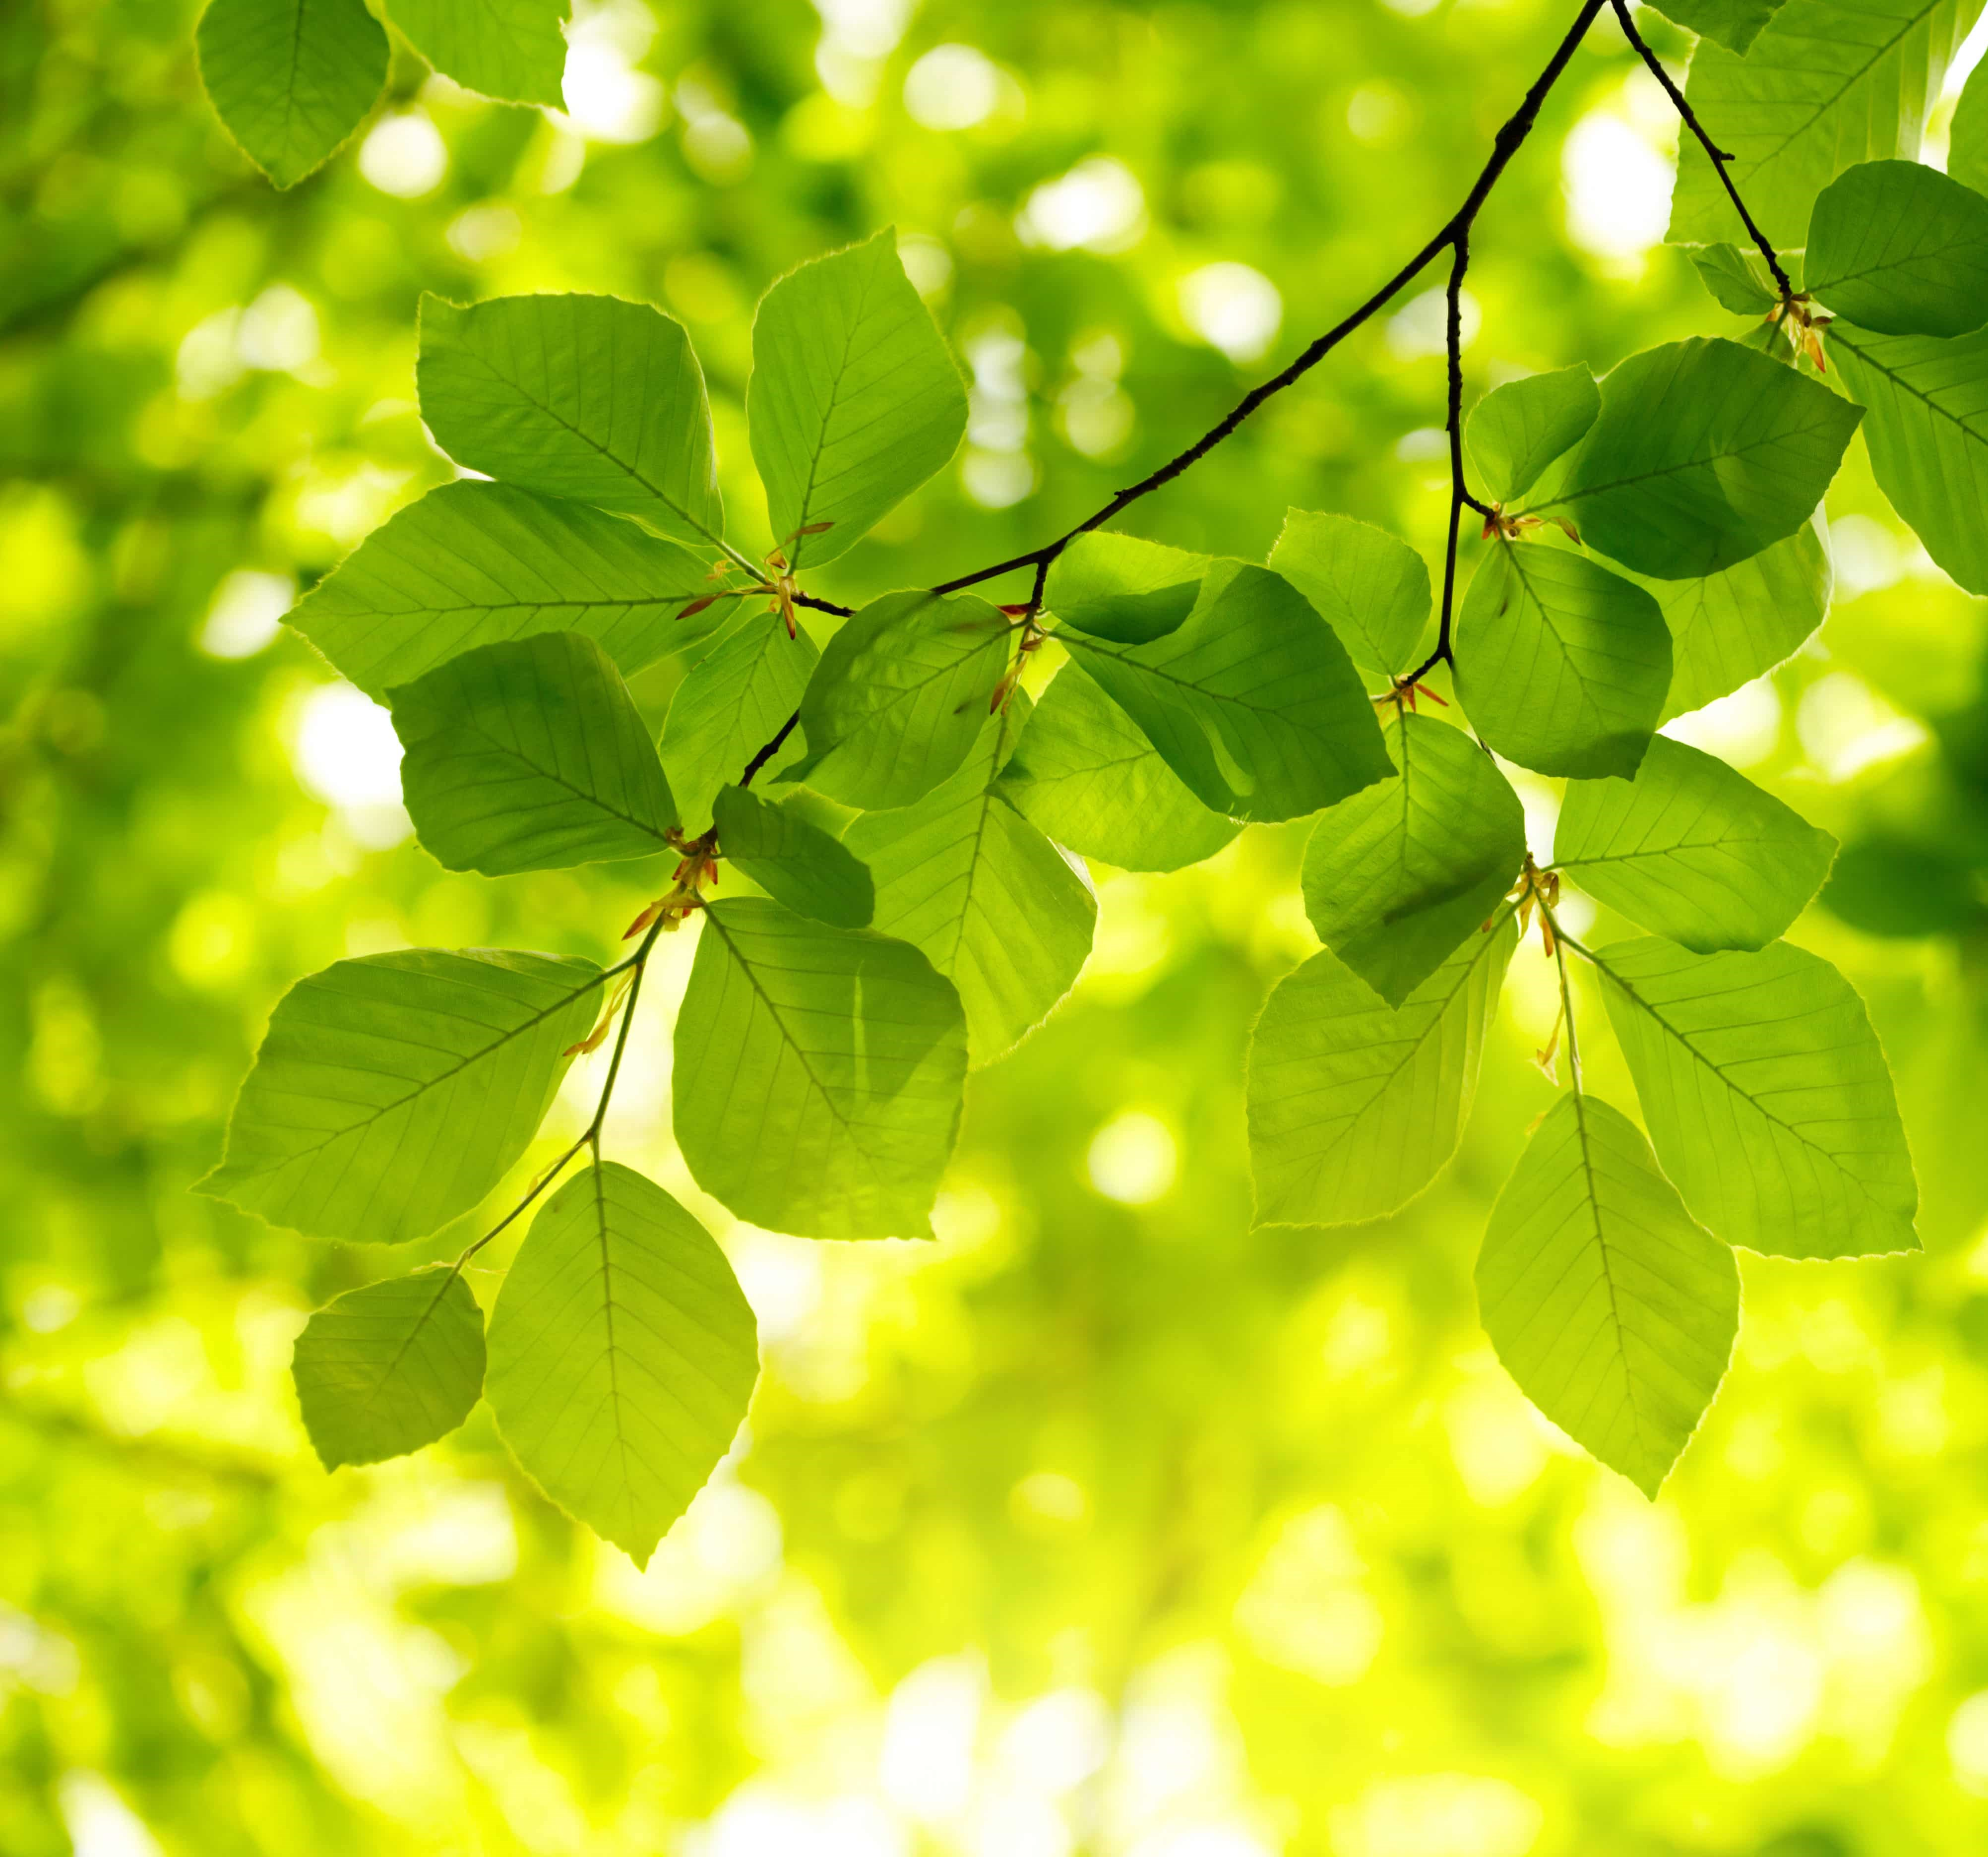 beech leaves on branch.jpg